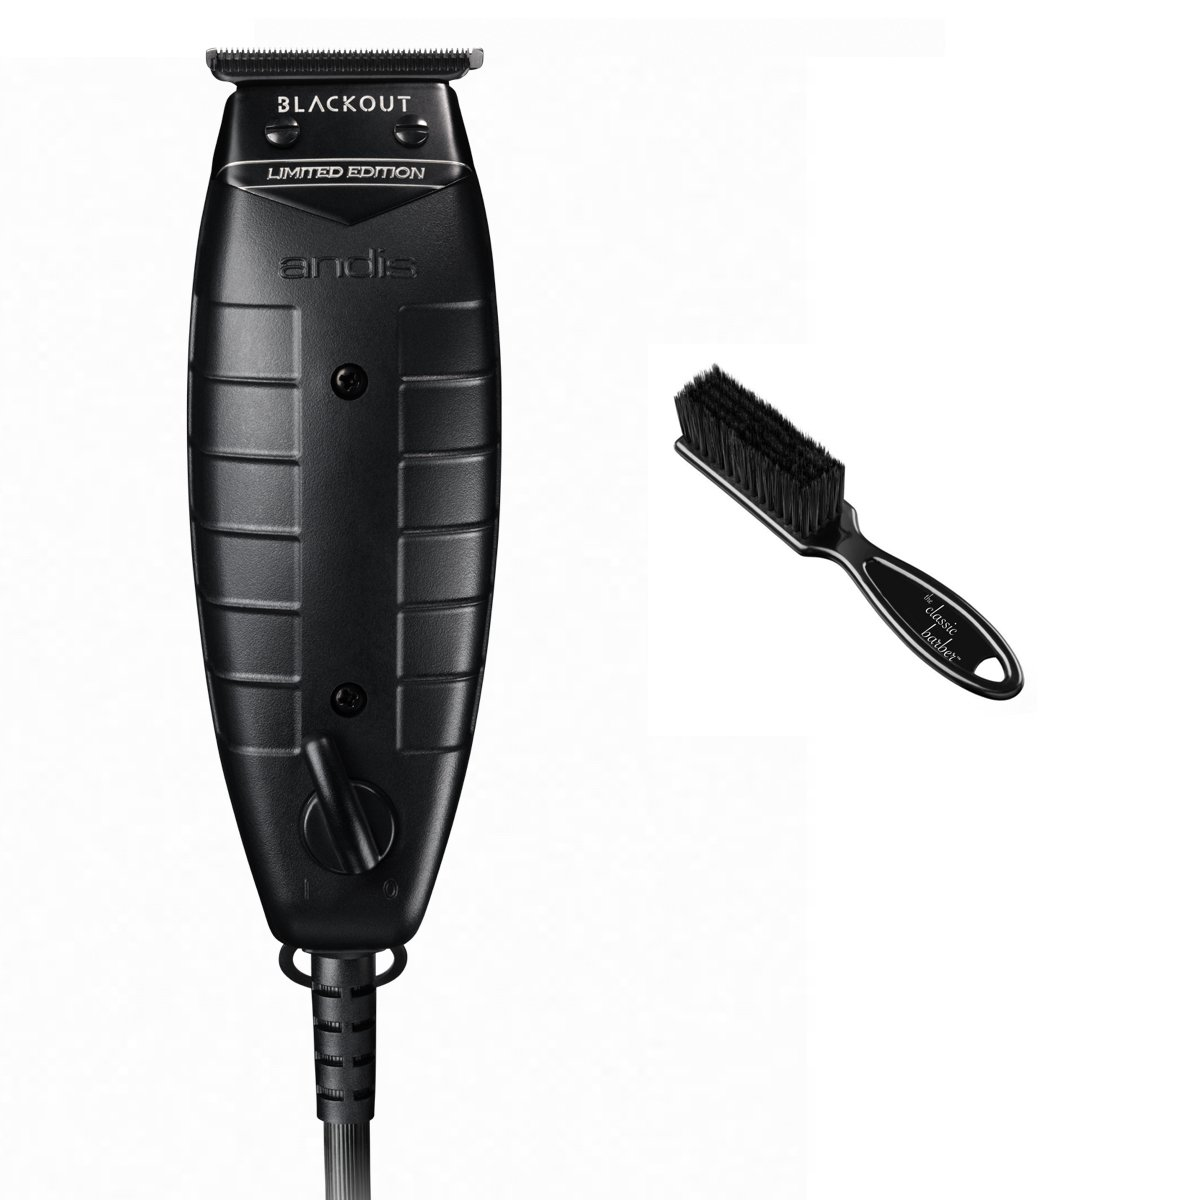 Andis 05110 Blackout T-Outliner, Black Bundle with The Classic Barber Blade Brush